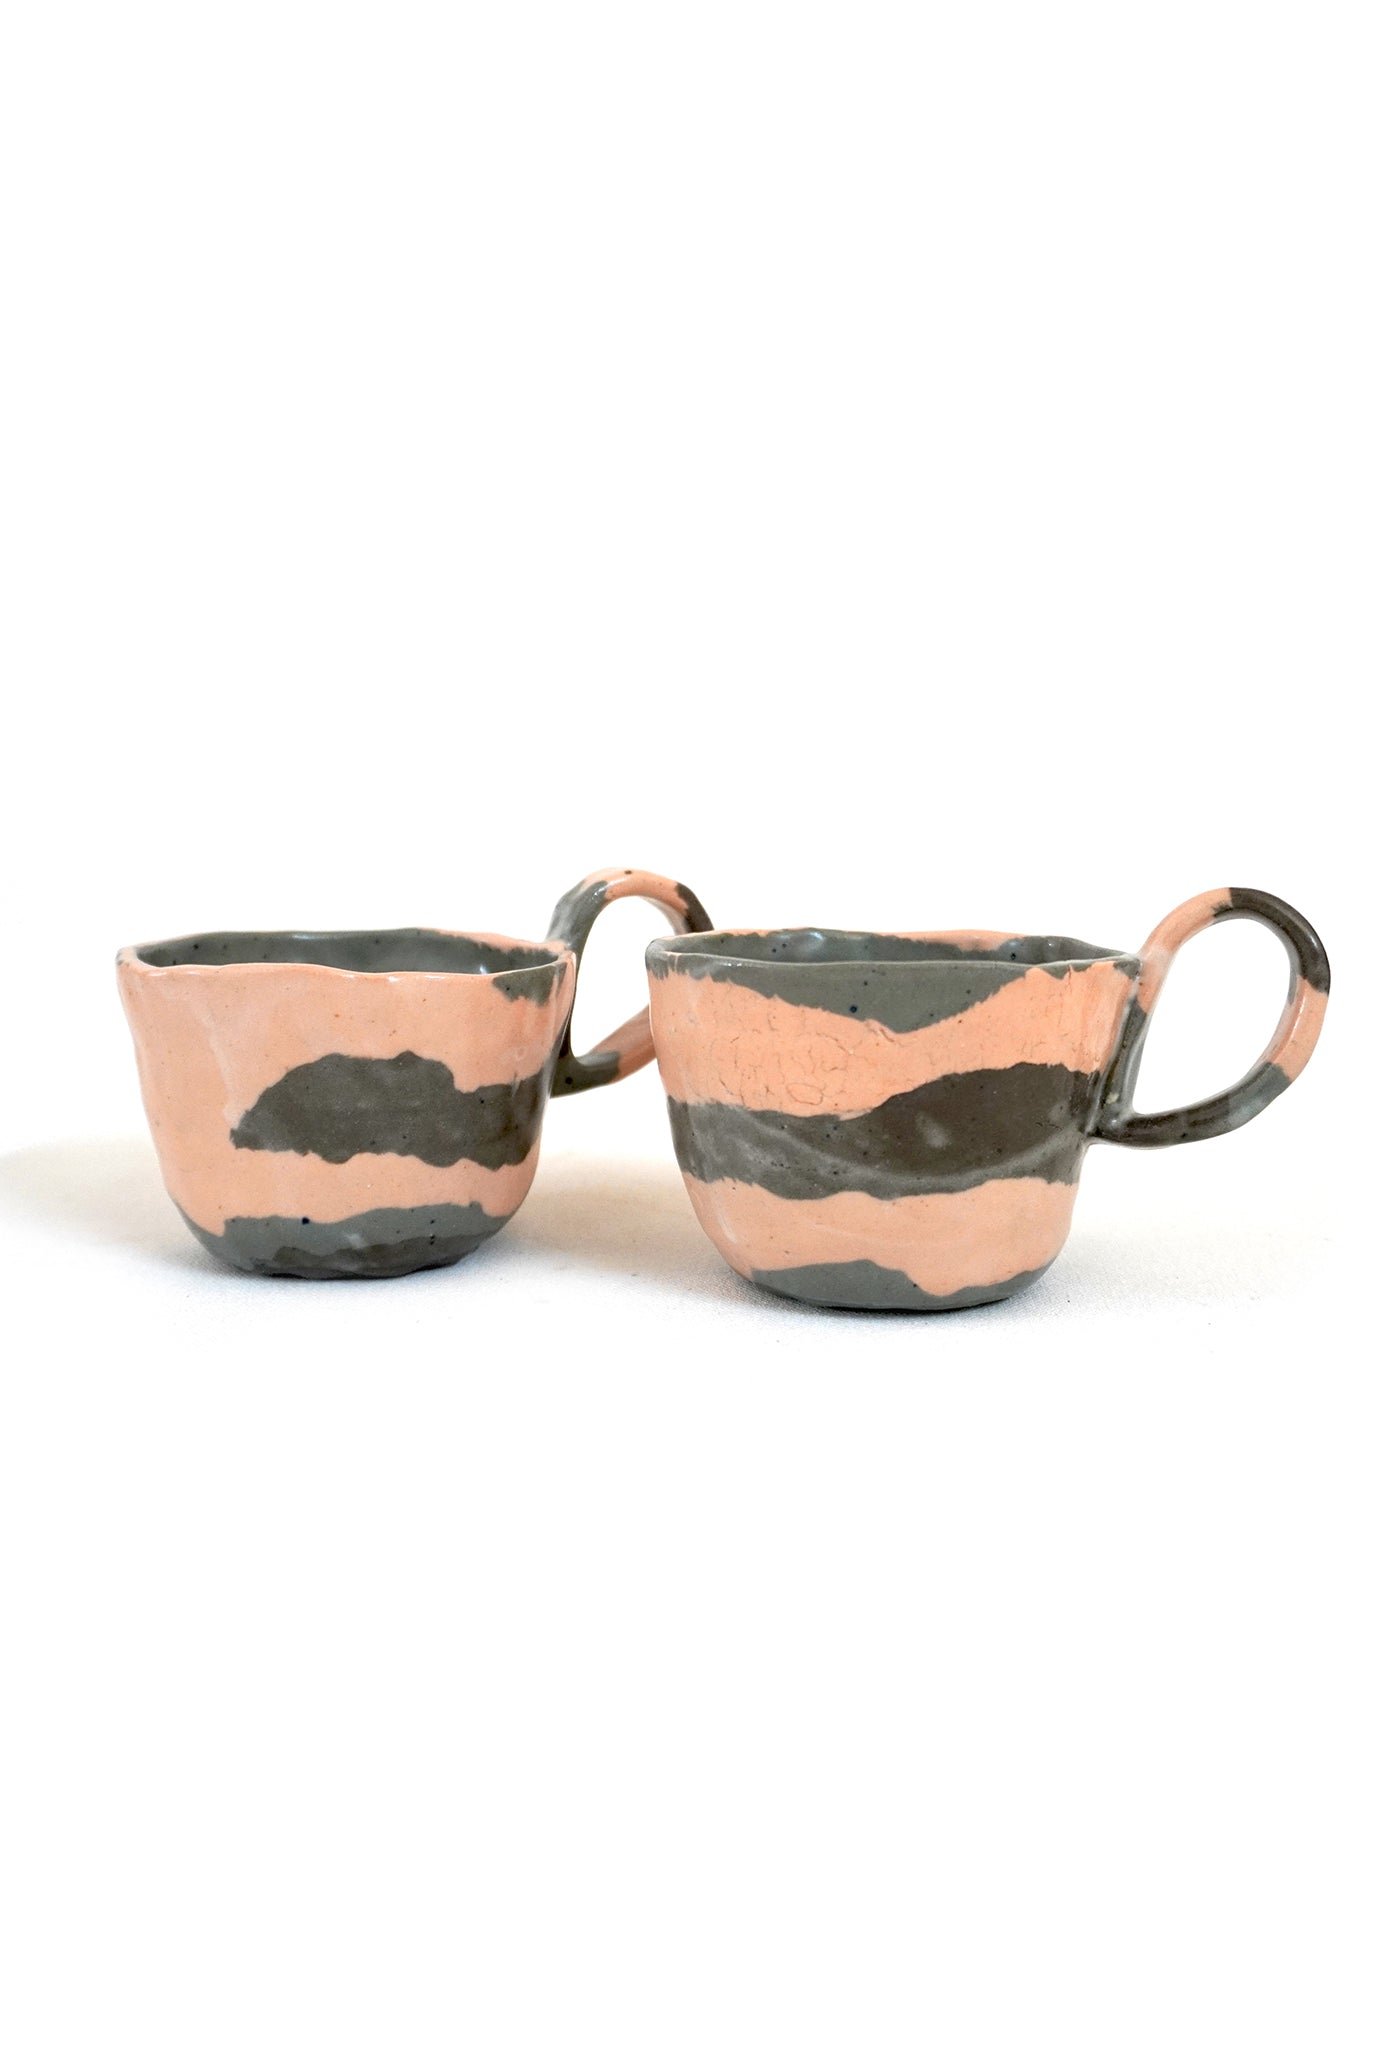 SALMON MARBLED CUPS - SET OF 2